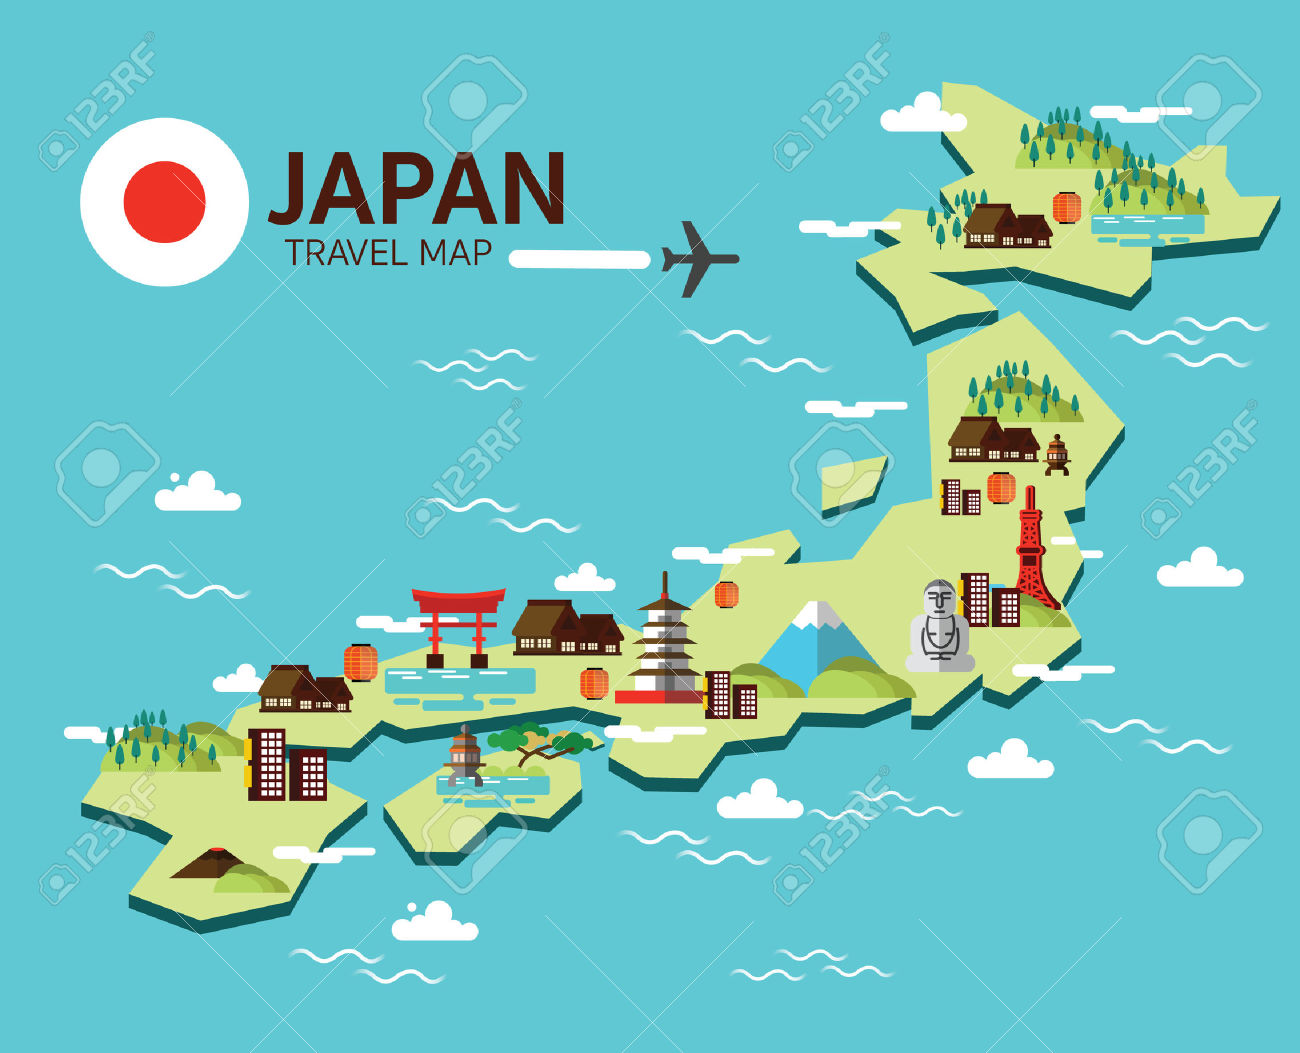 Travel Map Clipart Japan Cliparts Stock Vector And Royalty Free.